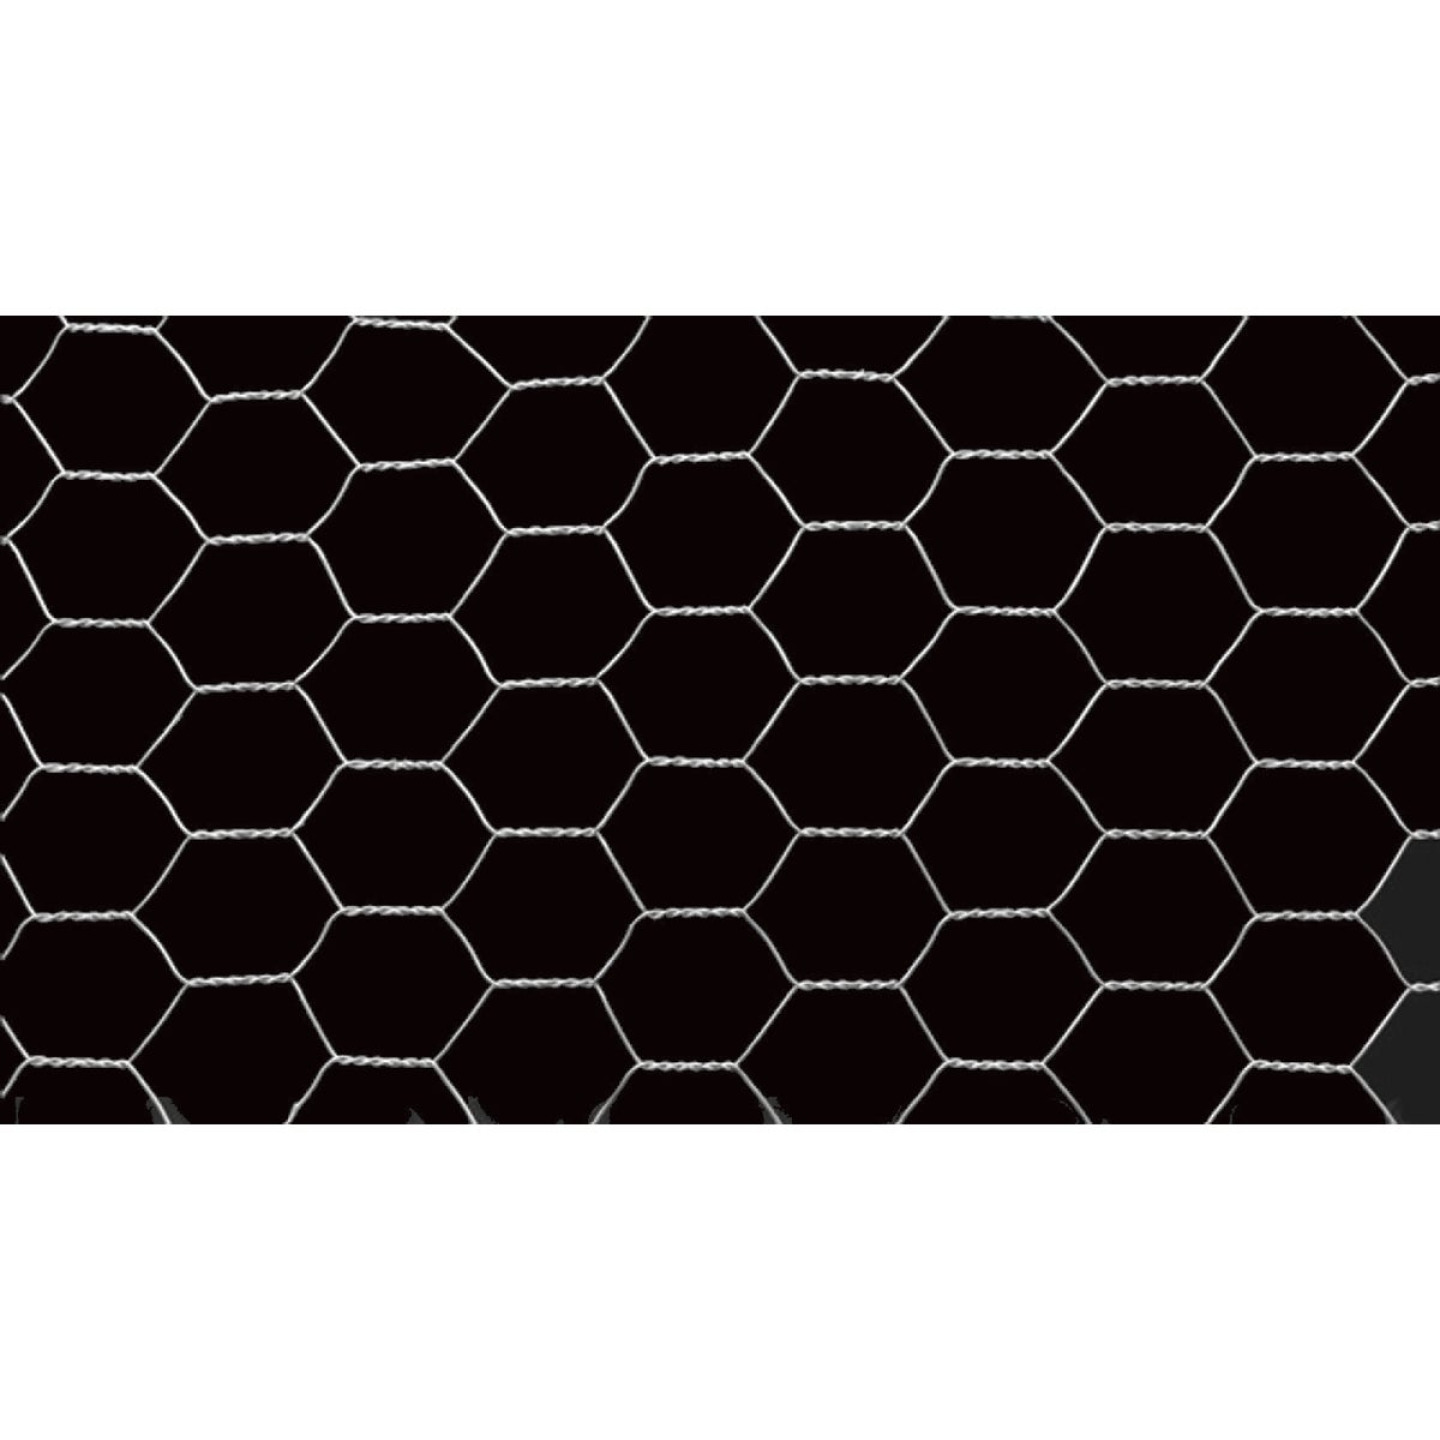 1 In. x 36 In. H. x 10 Ft. L. Hexagonal Wire Poultry Netting Image 4